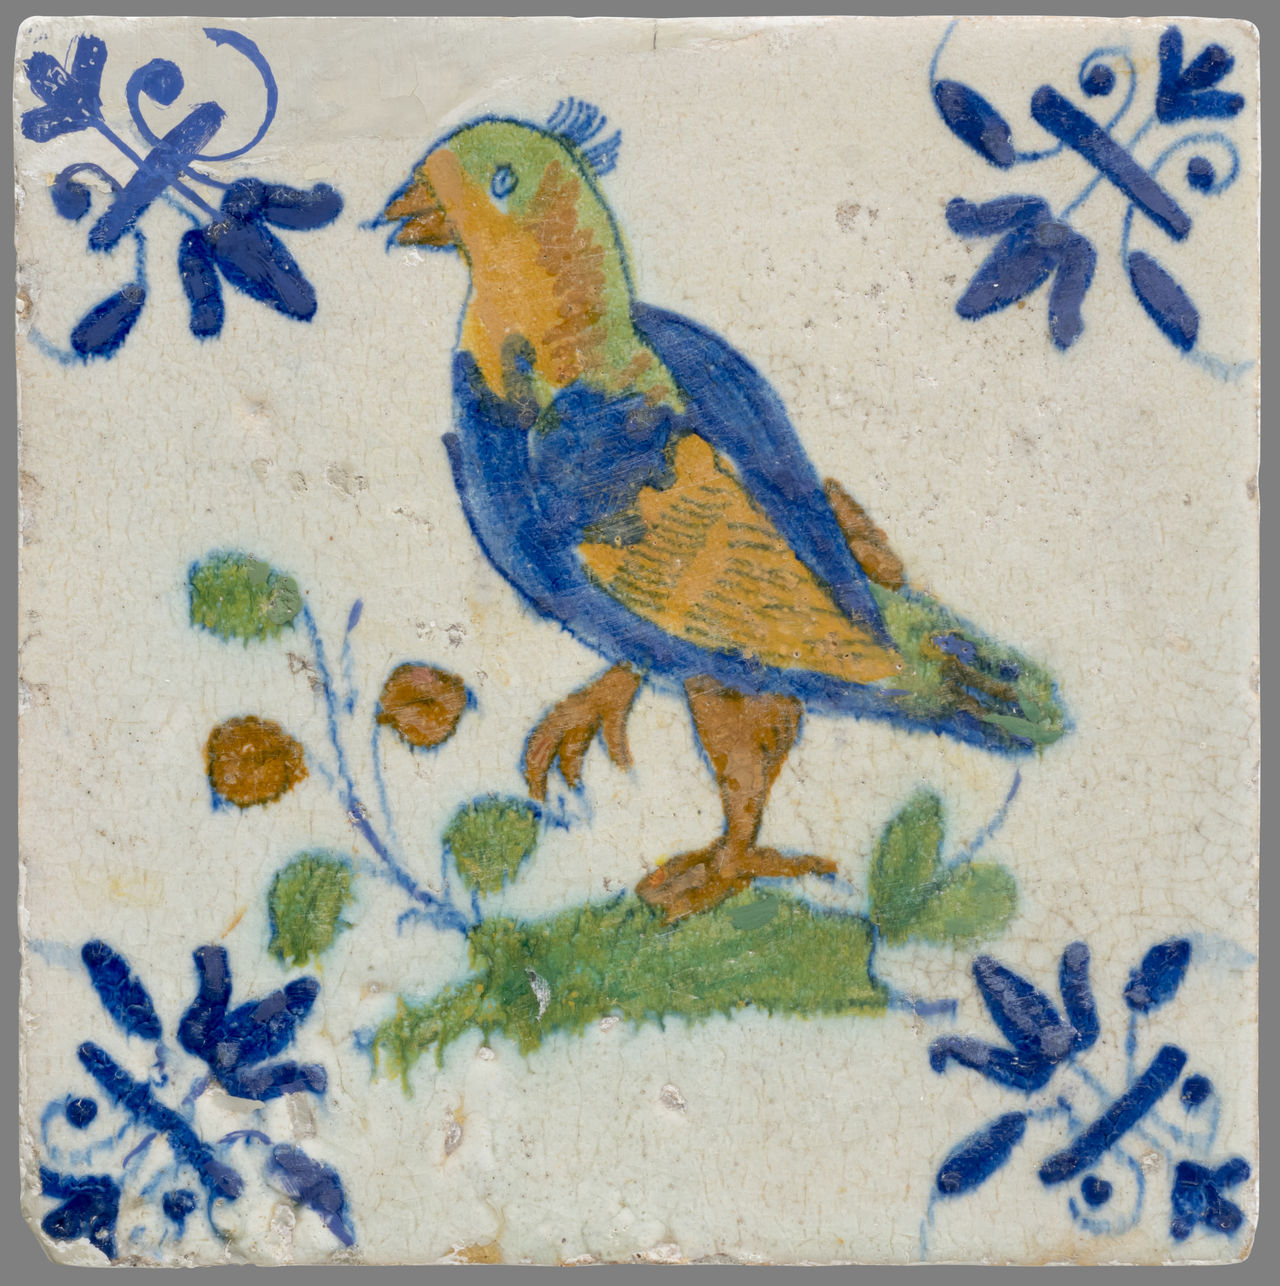 16th Century 17th Century 18th Century Animal Themes Bird Blue Ceramics Close-up Day Flower Nature Netherlands No People Outdoors Painted Image Tile